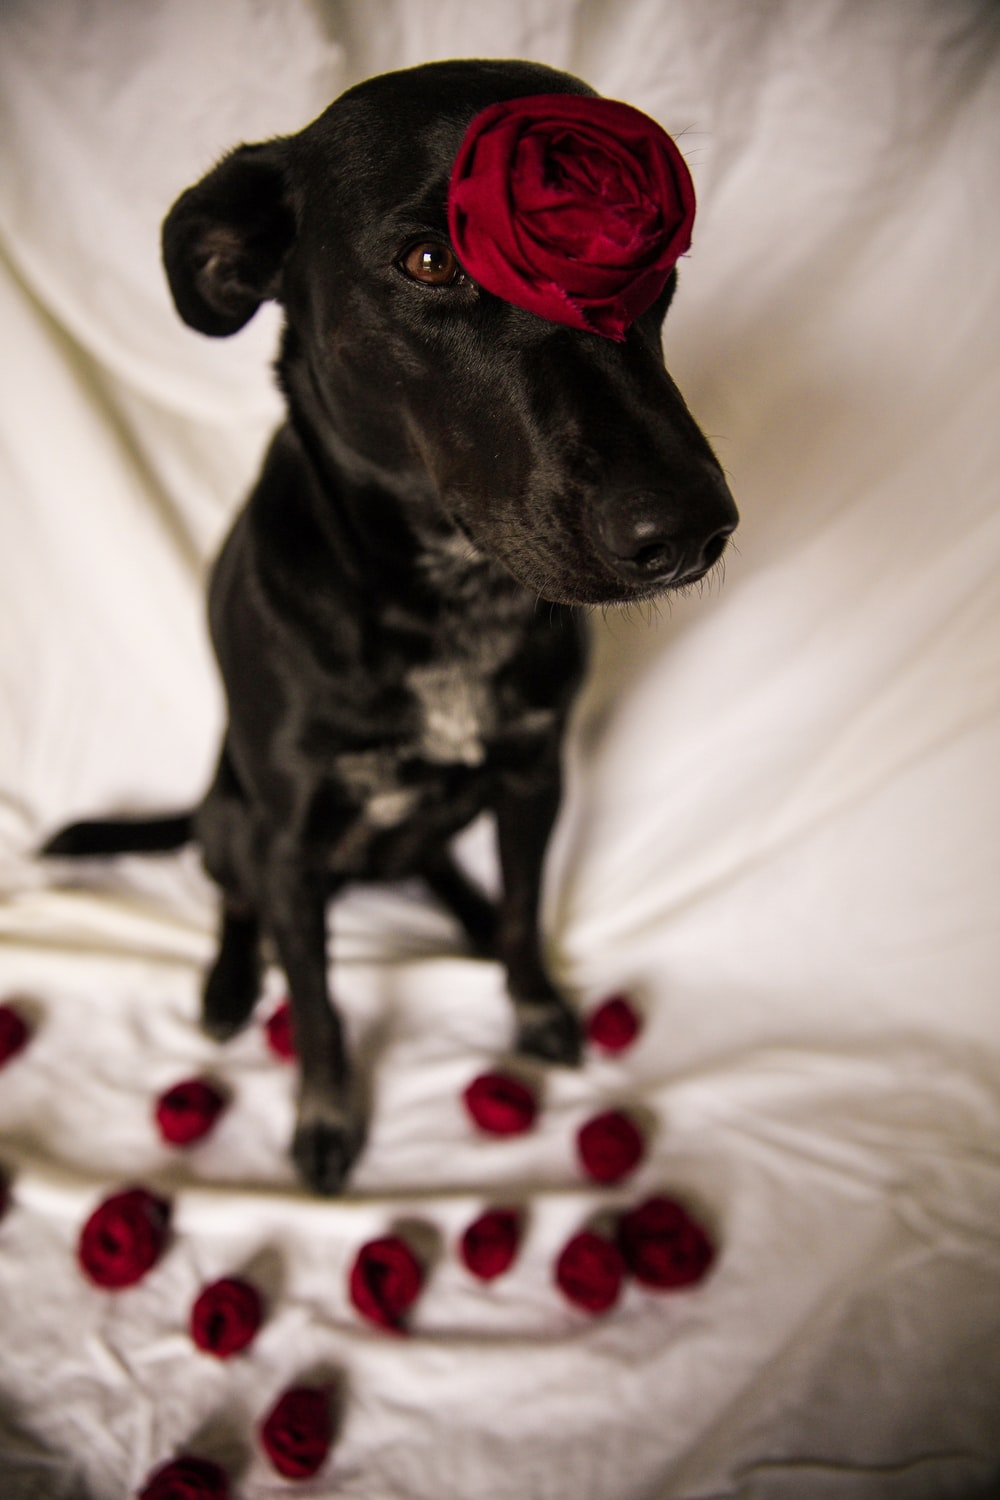 short-coated black dog standing still with red rose in head